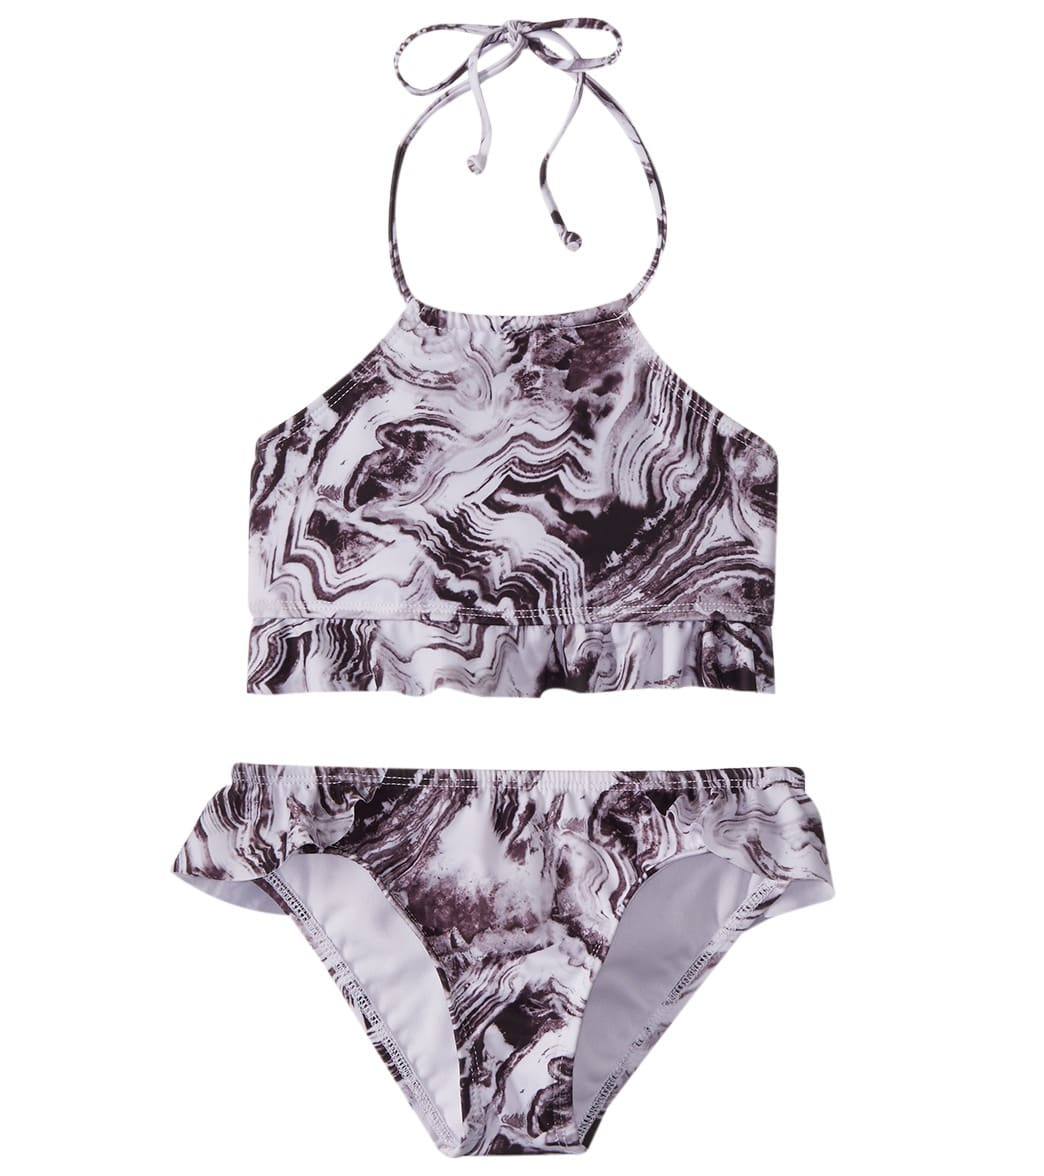 dccdfe4e200d4 Reef Girls' Mod Squad High Neck Two Piece Bikini Set (Big Kid) at  SwimOutlet.com - Free Shipping